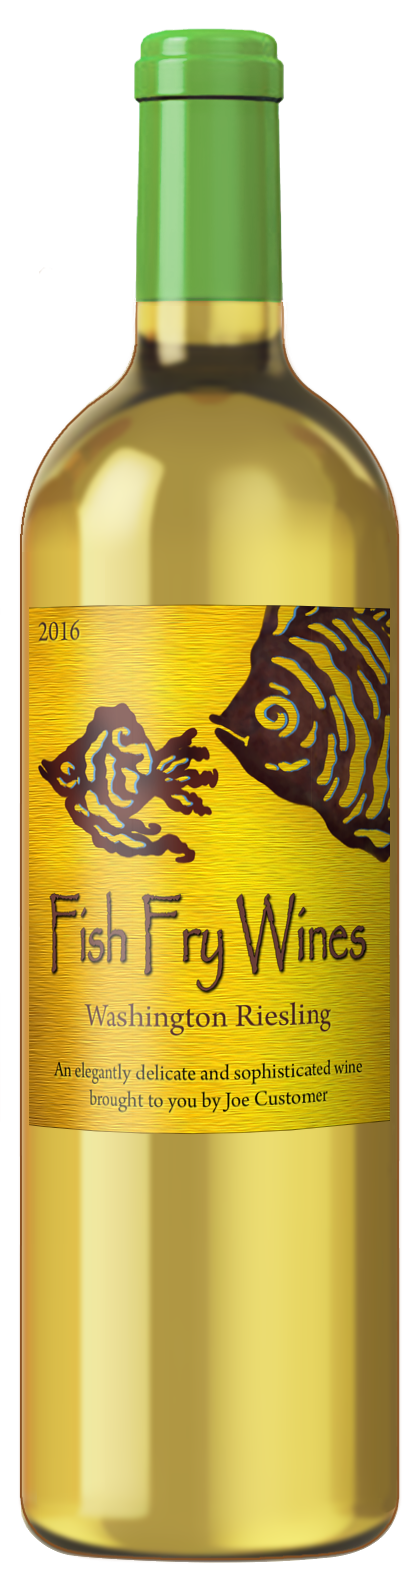 custom wine label with bright yellow background and abstract fish